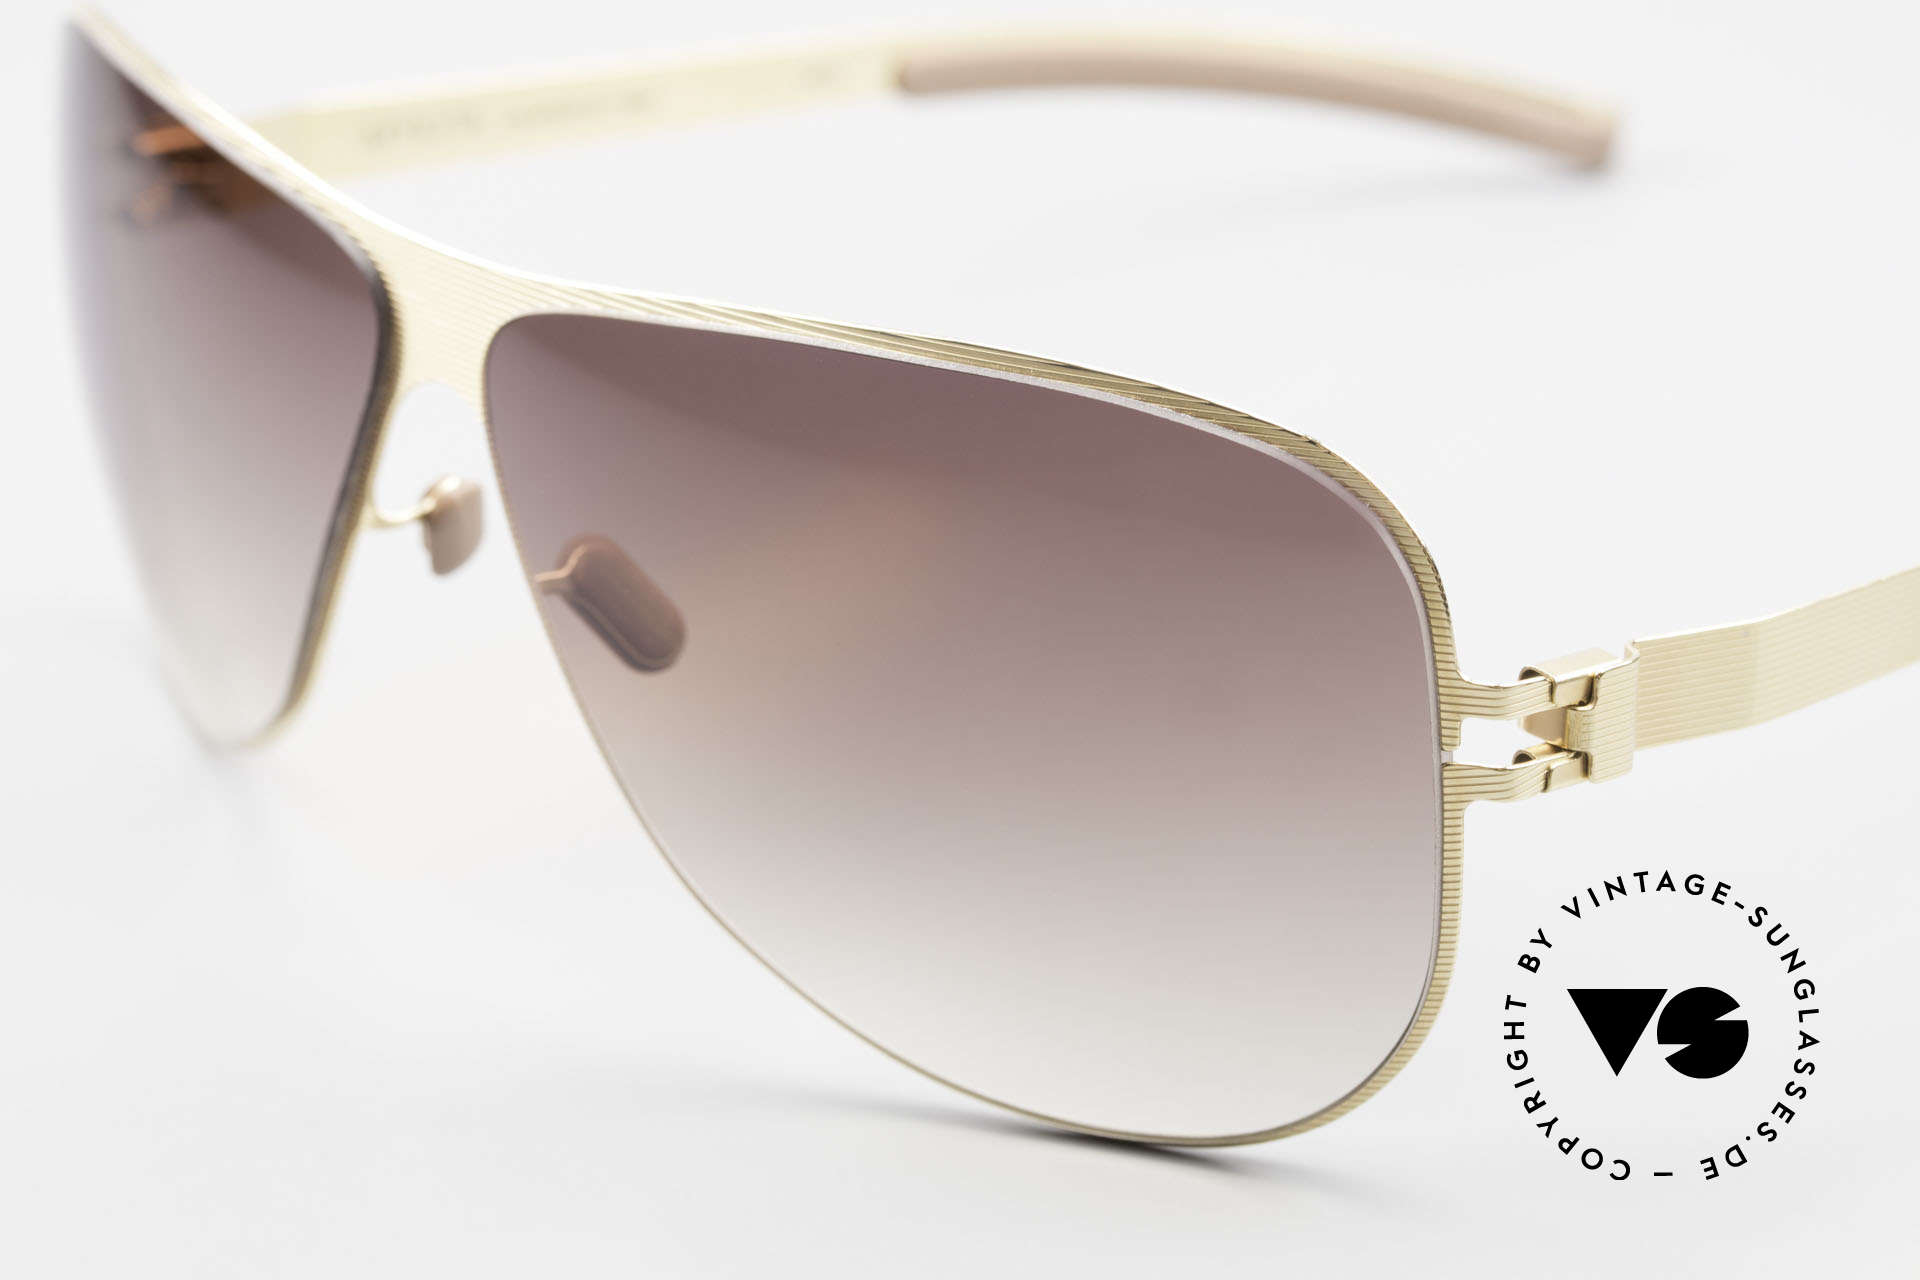 Mykita Ava Ladies Aviator Designer Shades, innovative and flexible metal frame = One size fits all!, Made for Women